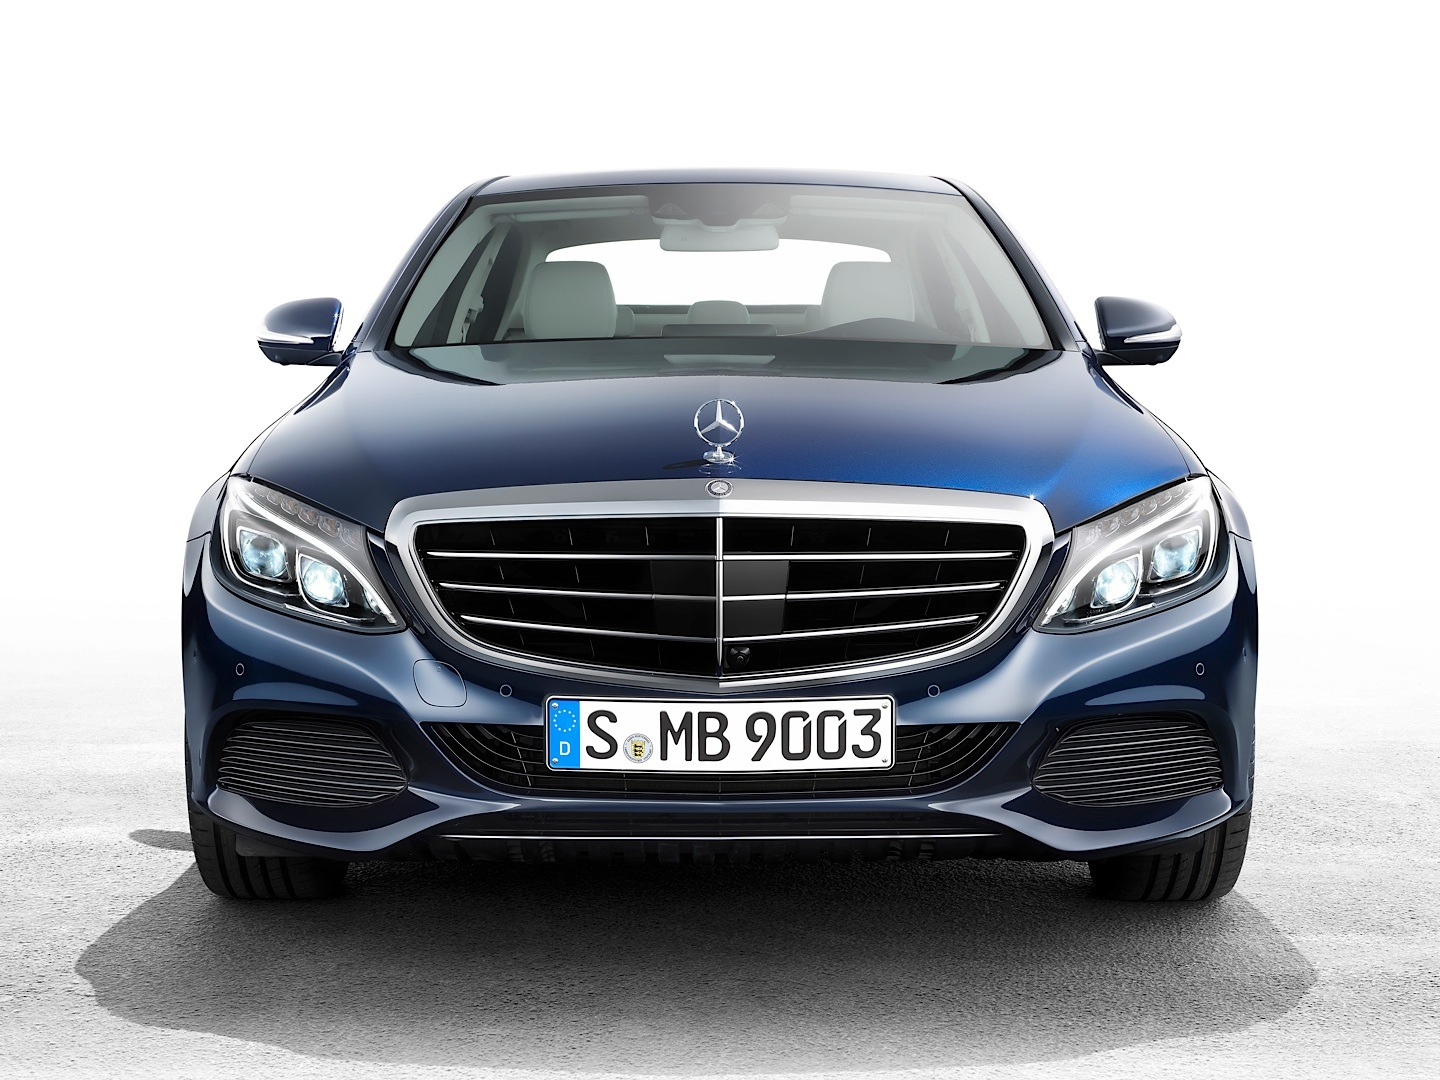 2015 mercedes benz c class sedan review msrp mpg for Mercedes benz c300 cost